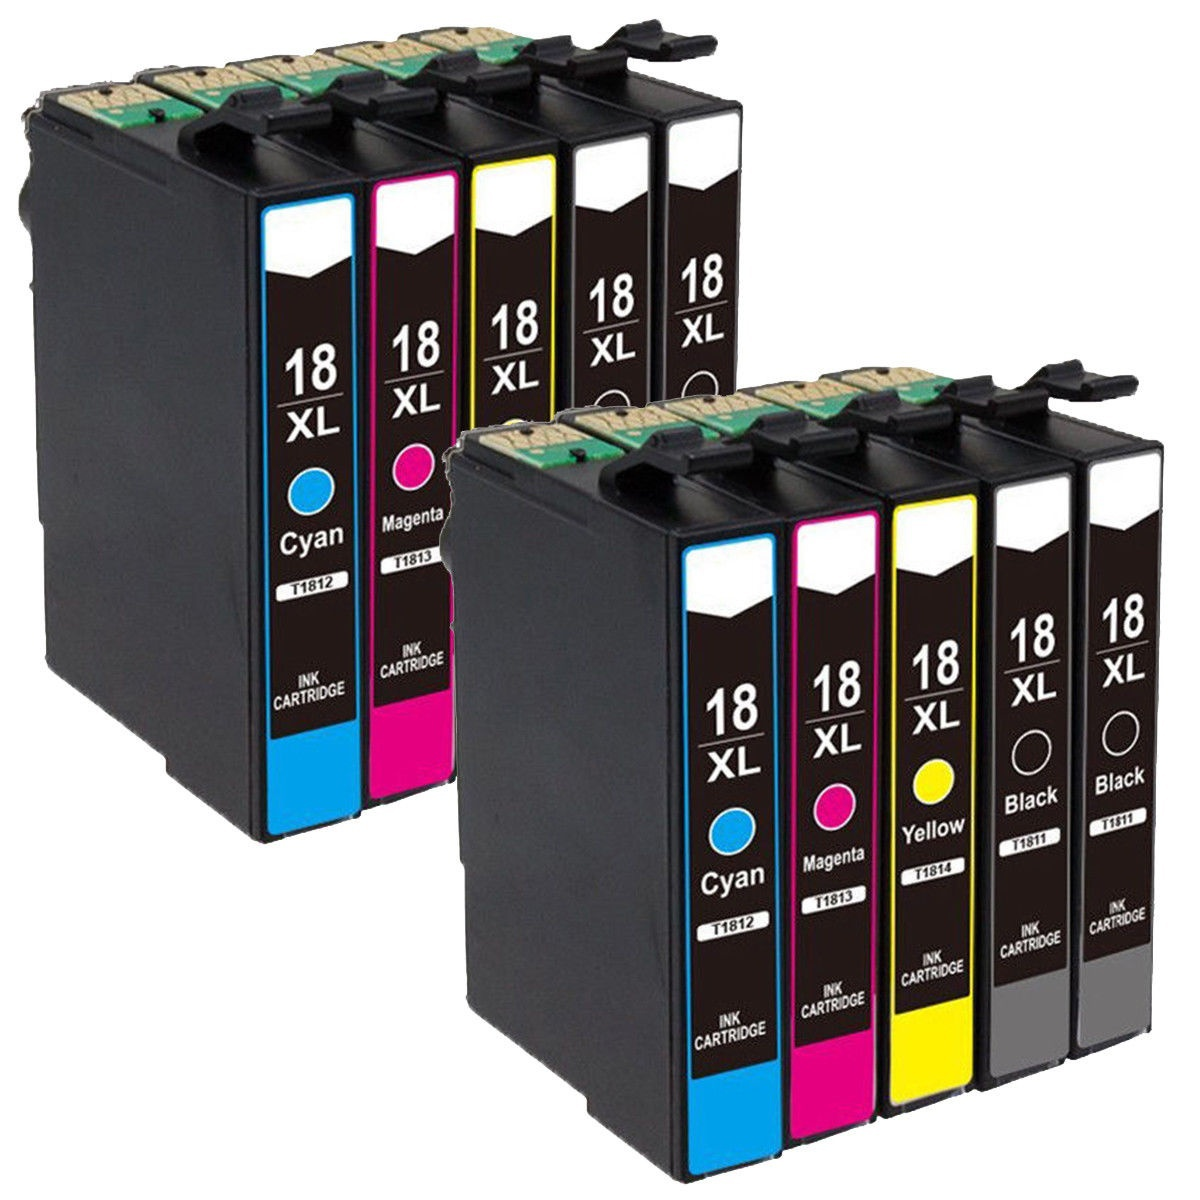 10 Cartridges Compatible For Epson Expression Home XP-205 212 215 312 315 412 415 225 T1811